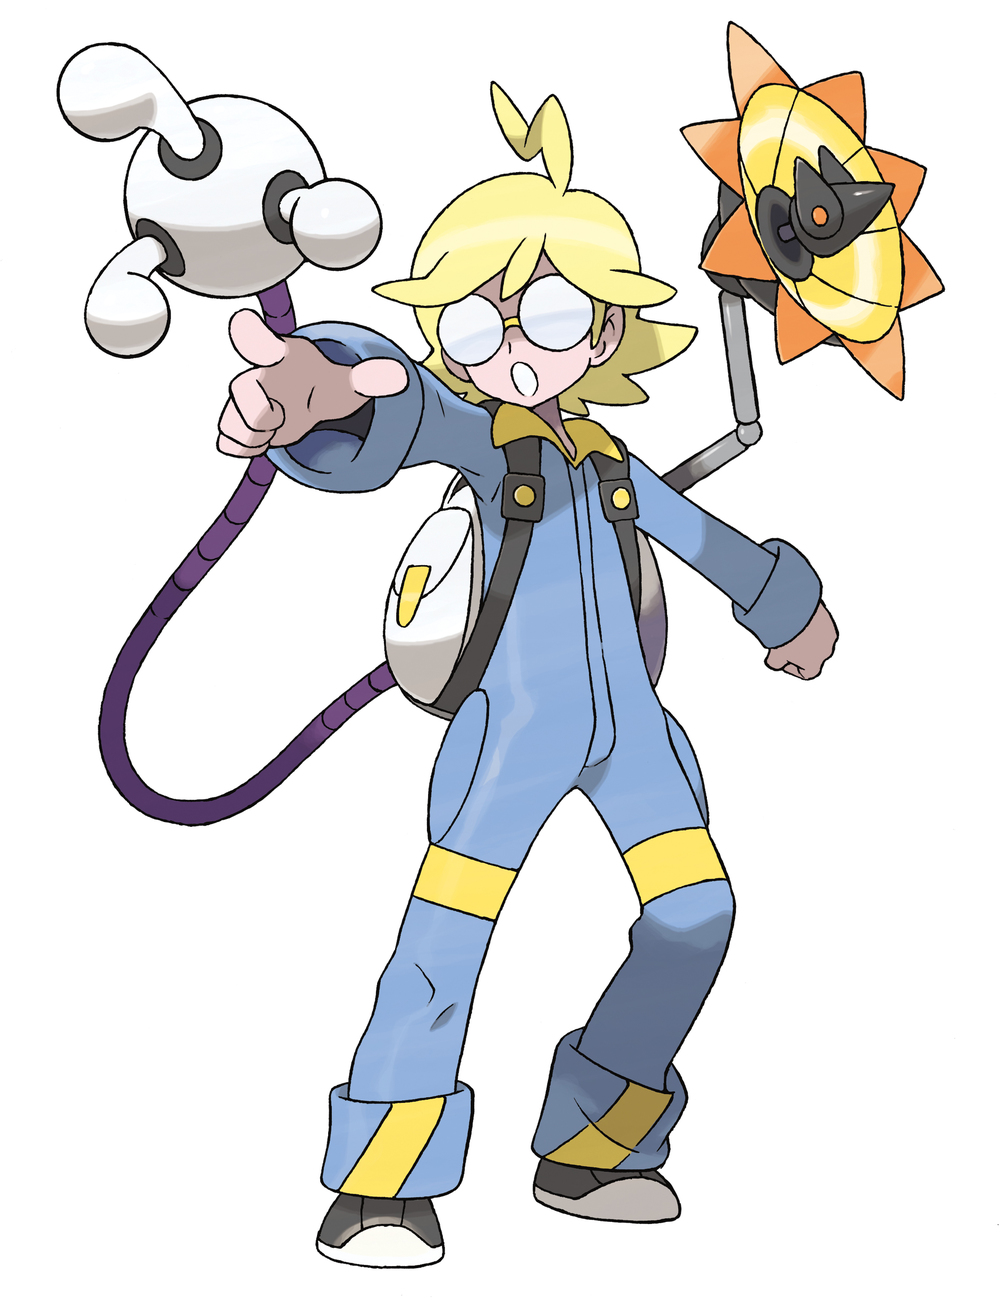 Gym Leader Clemont_official art_300dpi.jpg